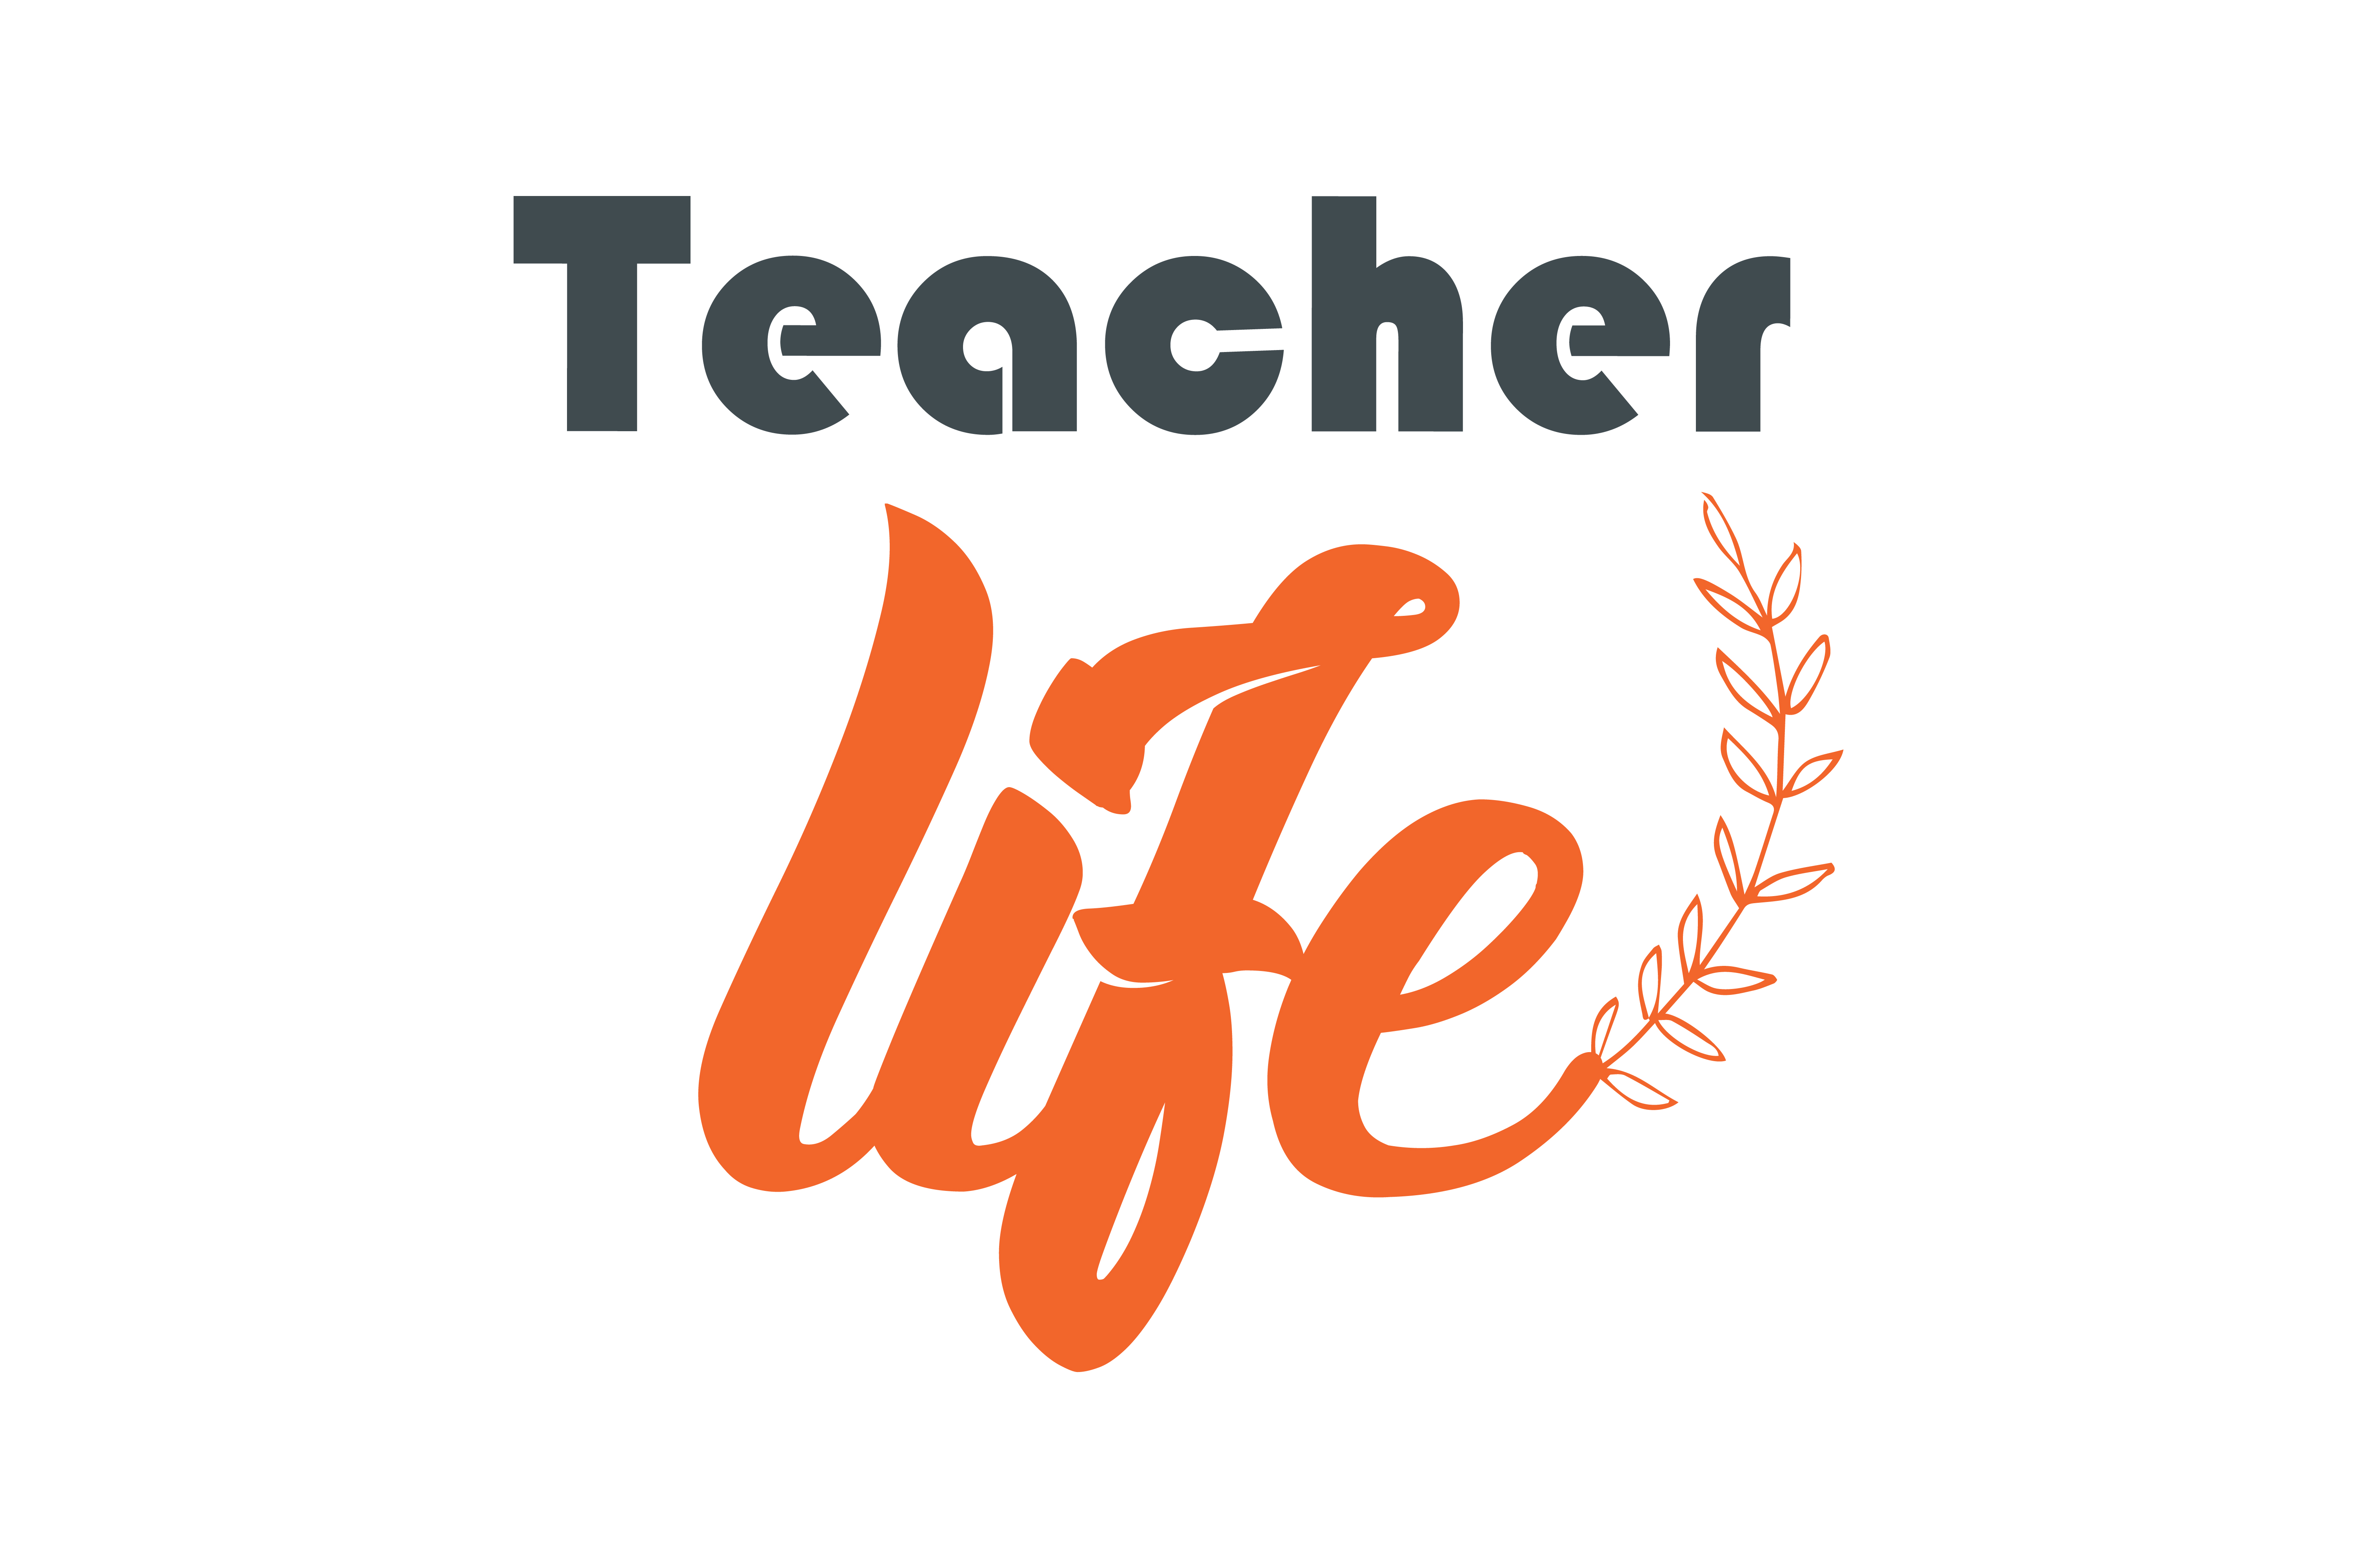 Download Free Teacher Life Quote Svg Cut Graphic By Thelucky Creative Fabrica for Cricut Explore, Silhouette and other cutting machines.